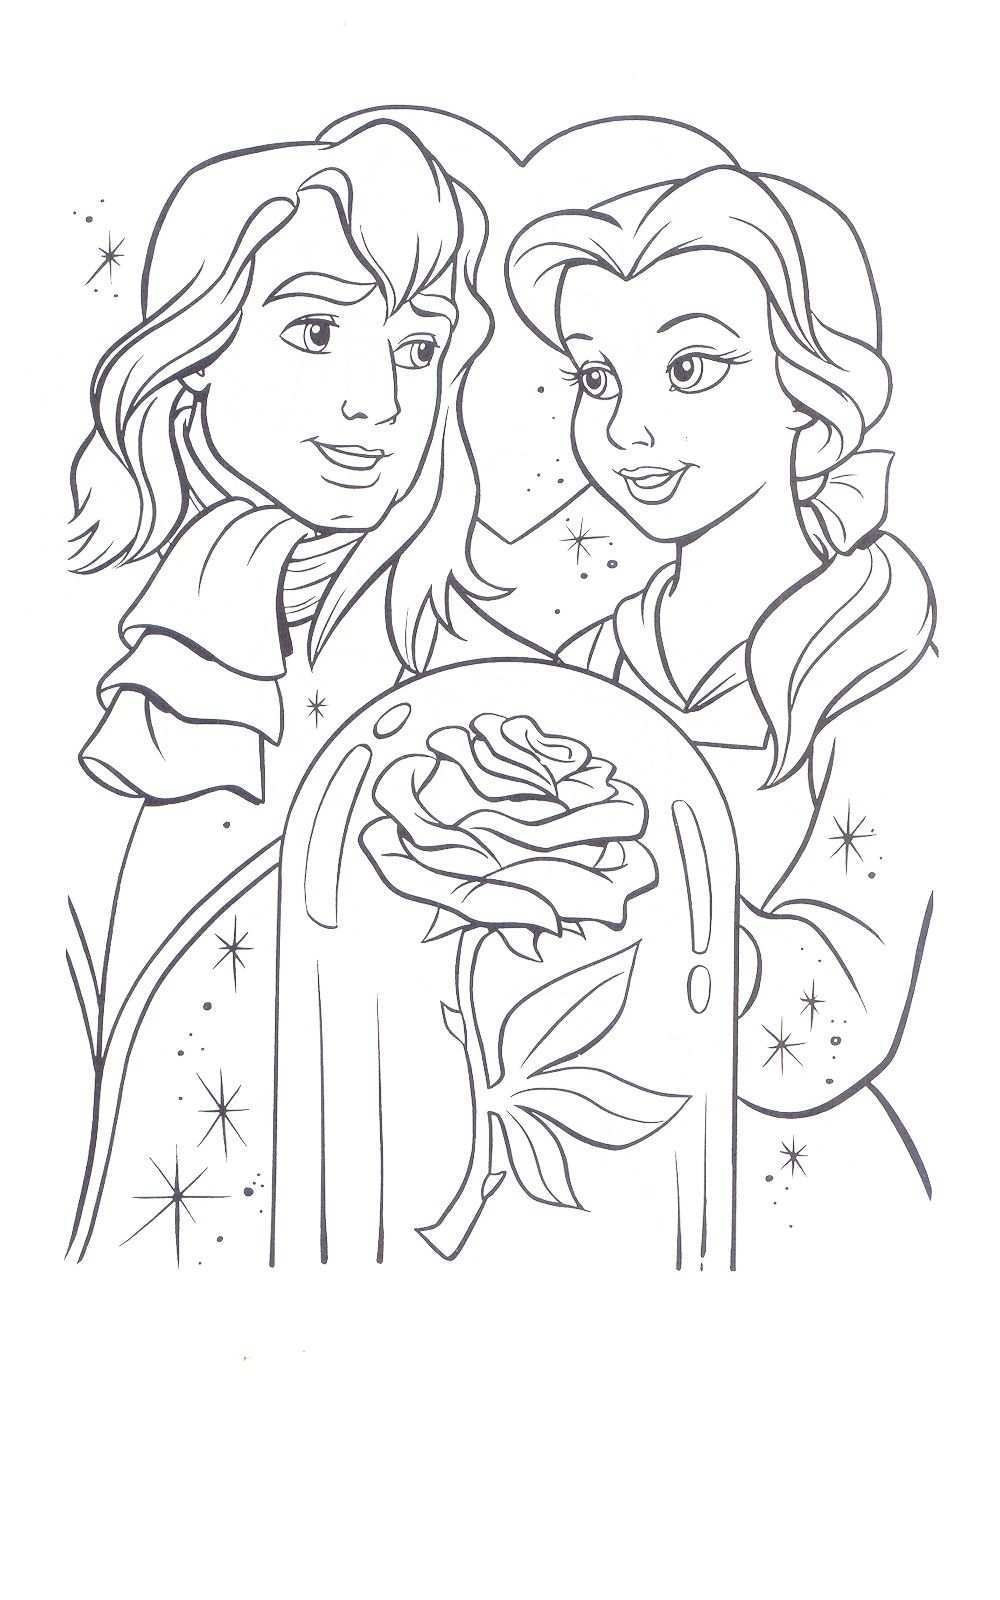 Beauty And The Beast Coloring Page Disney Coloring Pages Cartoon Coloring Pages Rose Coloring Pages